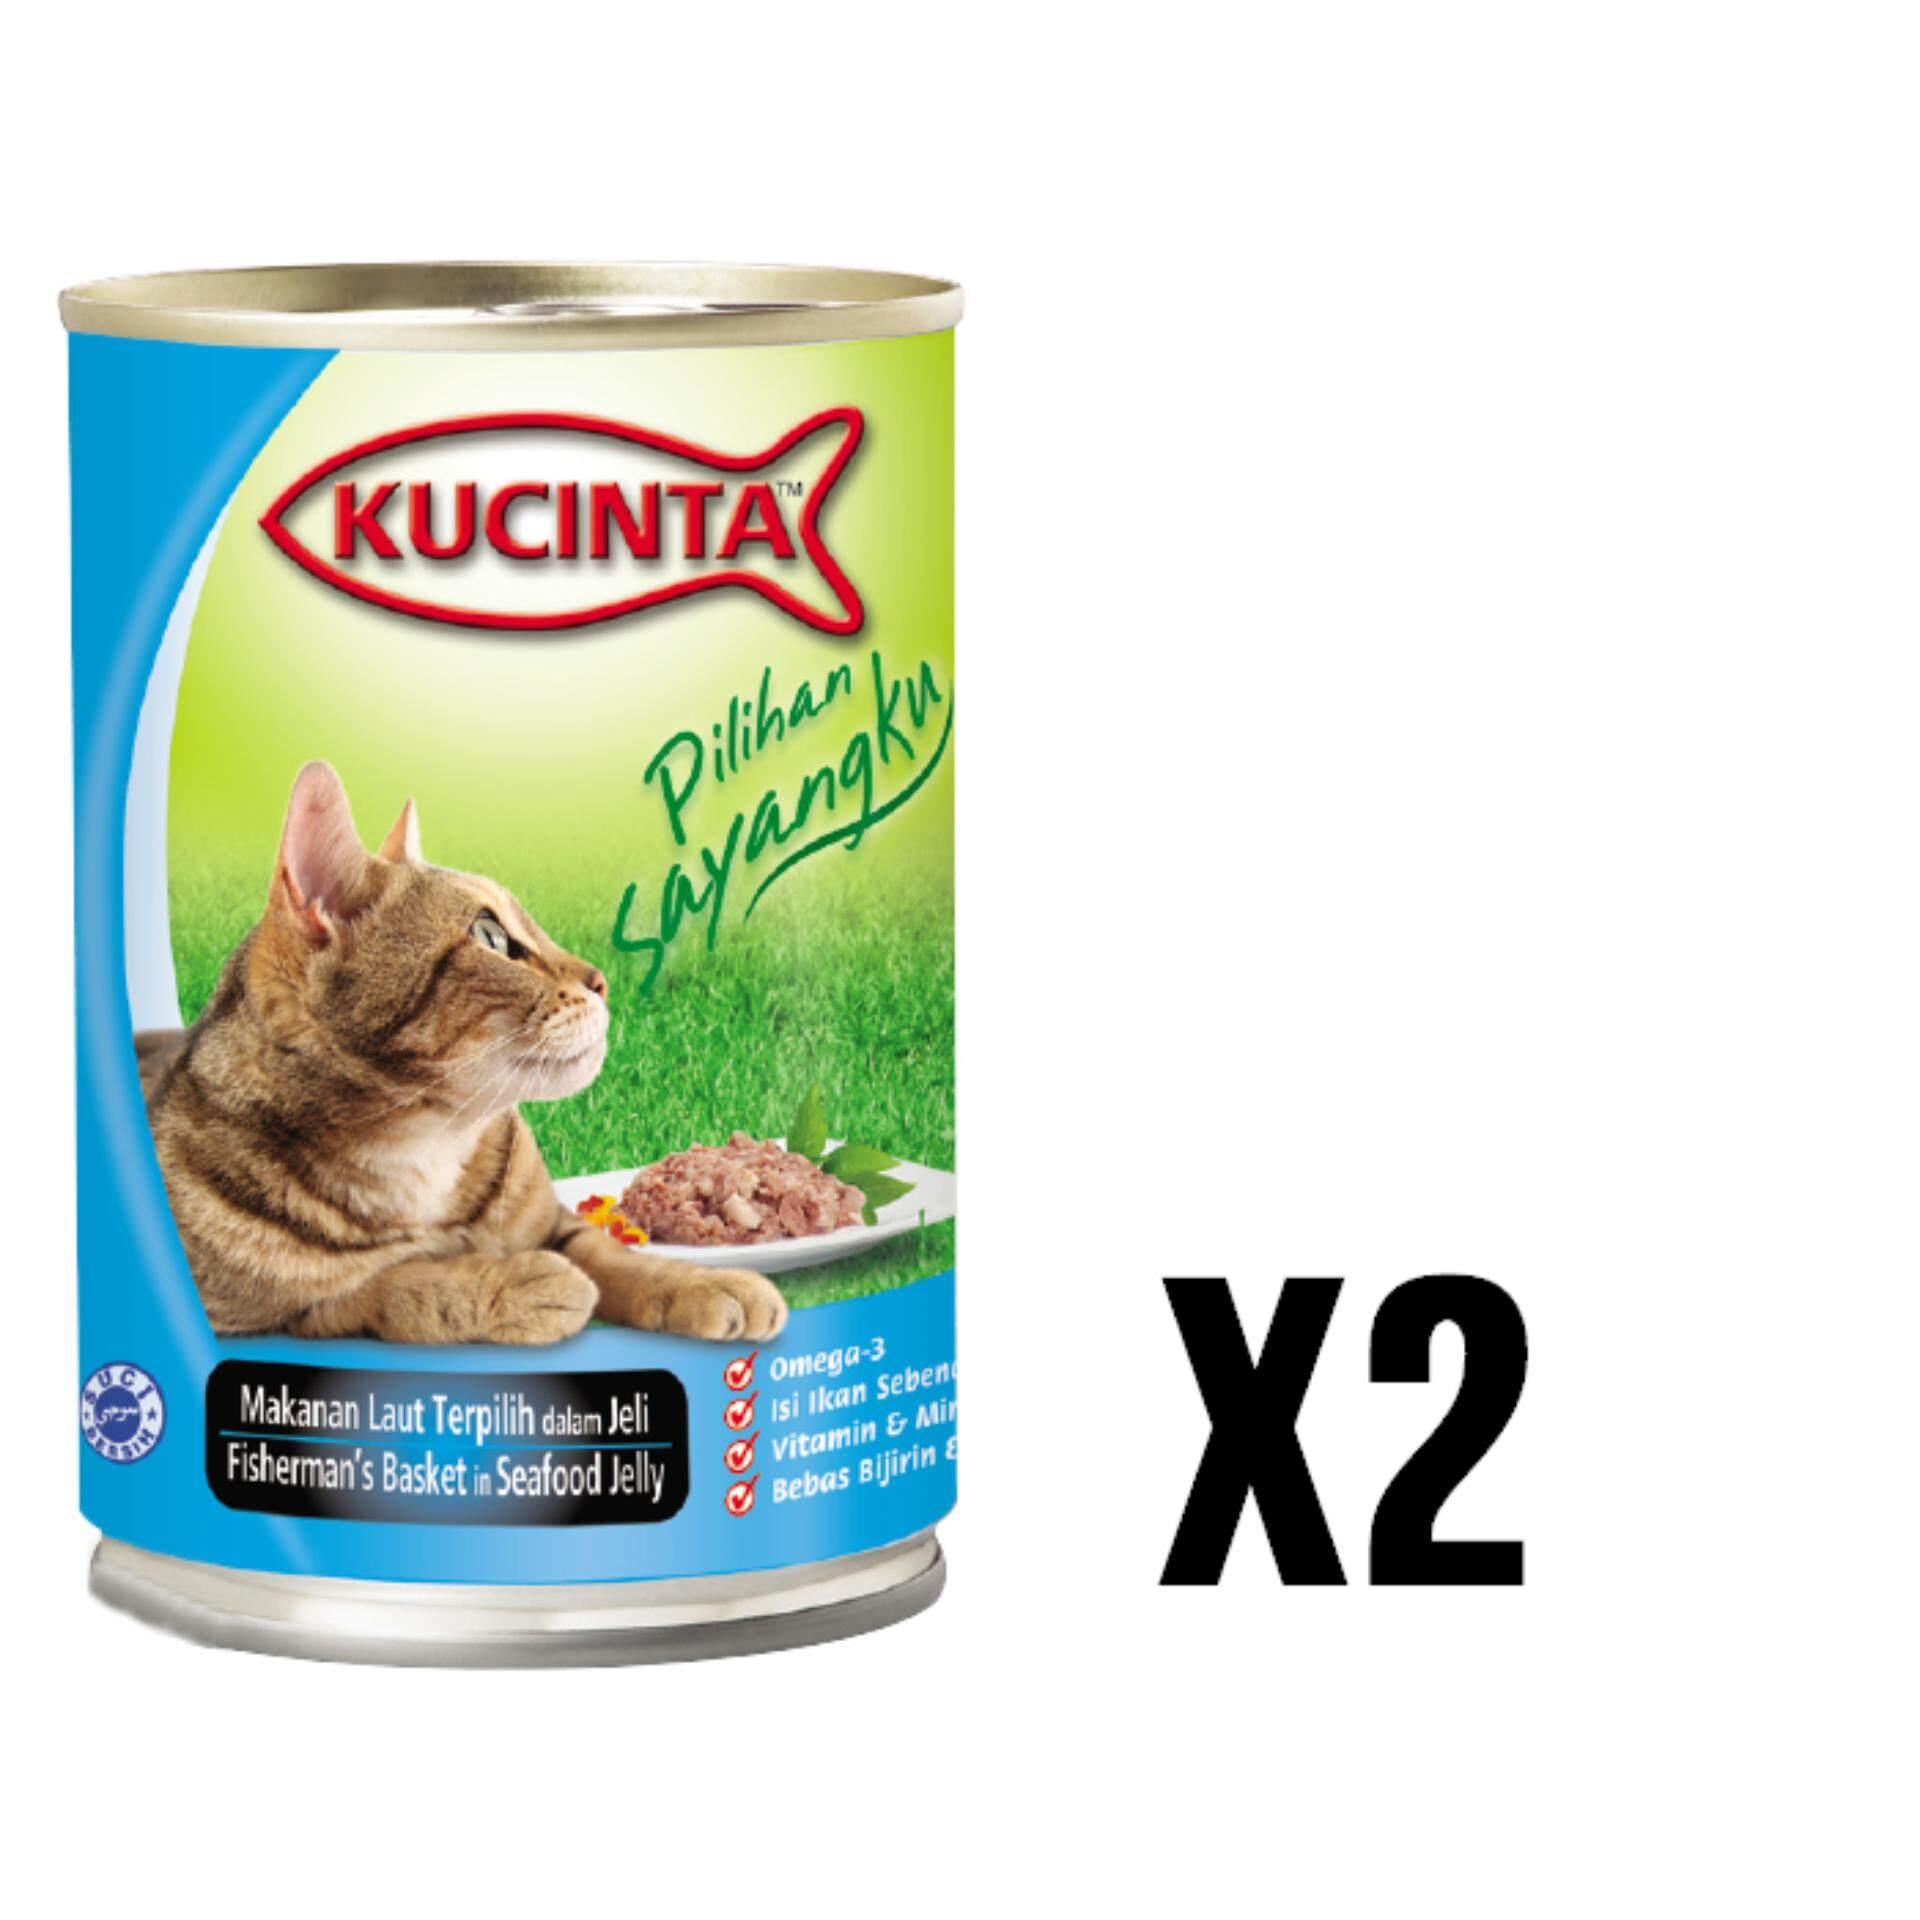 Kucinta Fisherman's Basket in Seafood Jelly Canned Food 400G